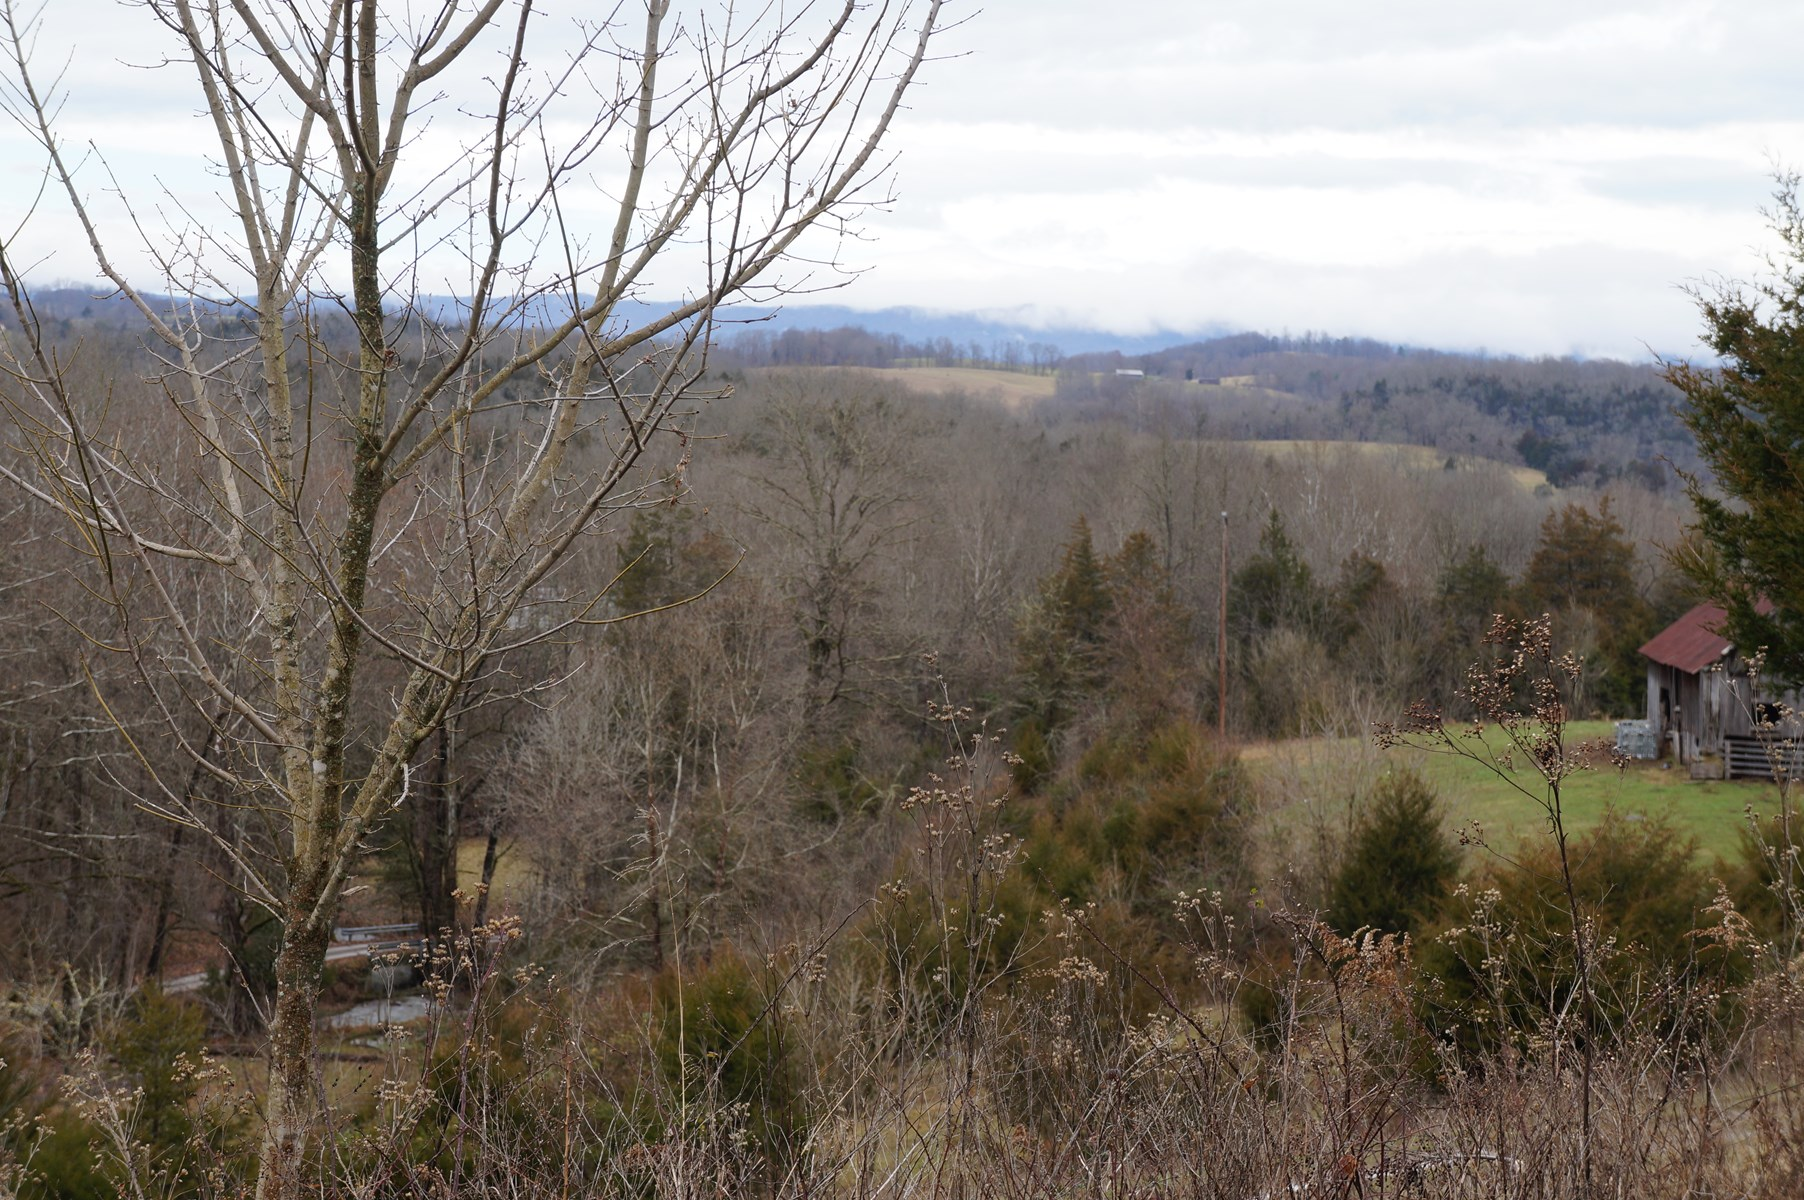 37 Acres of Farm Land For Sale in Tazewell, TN